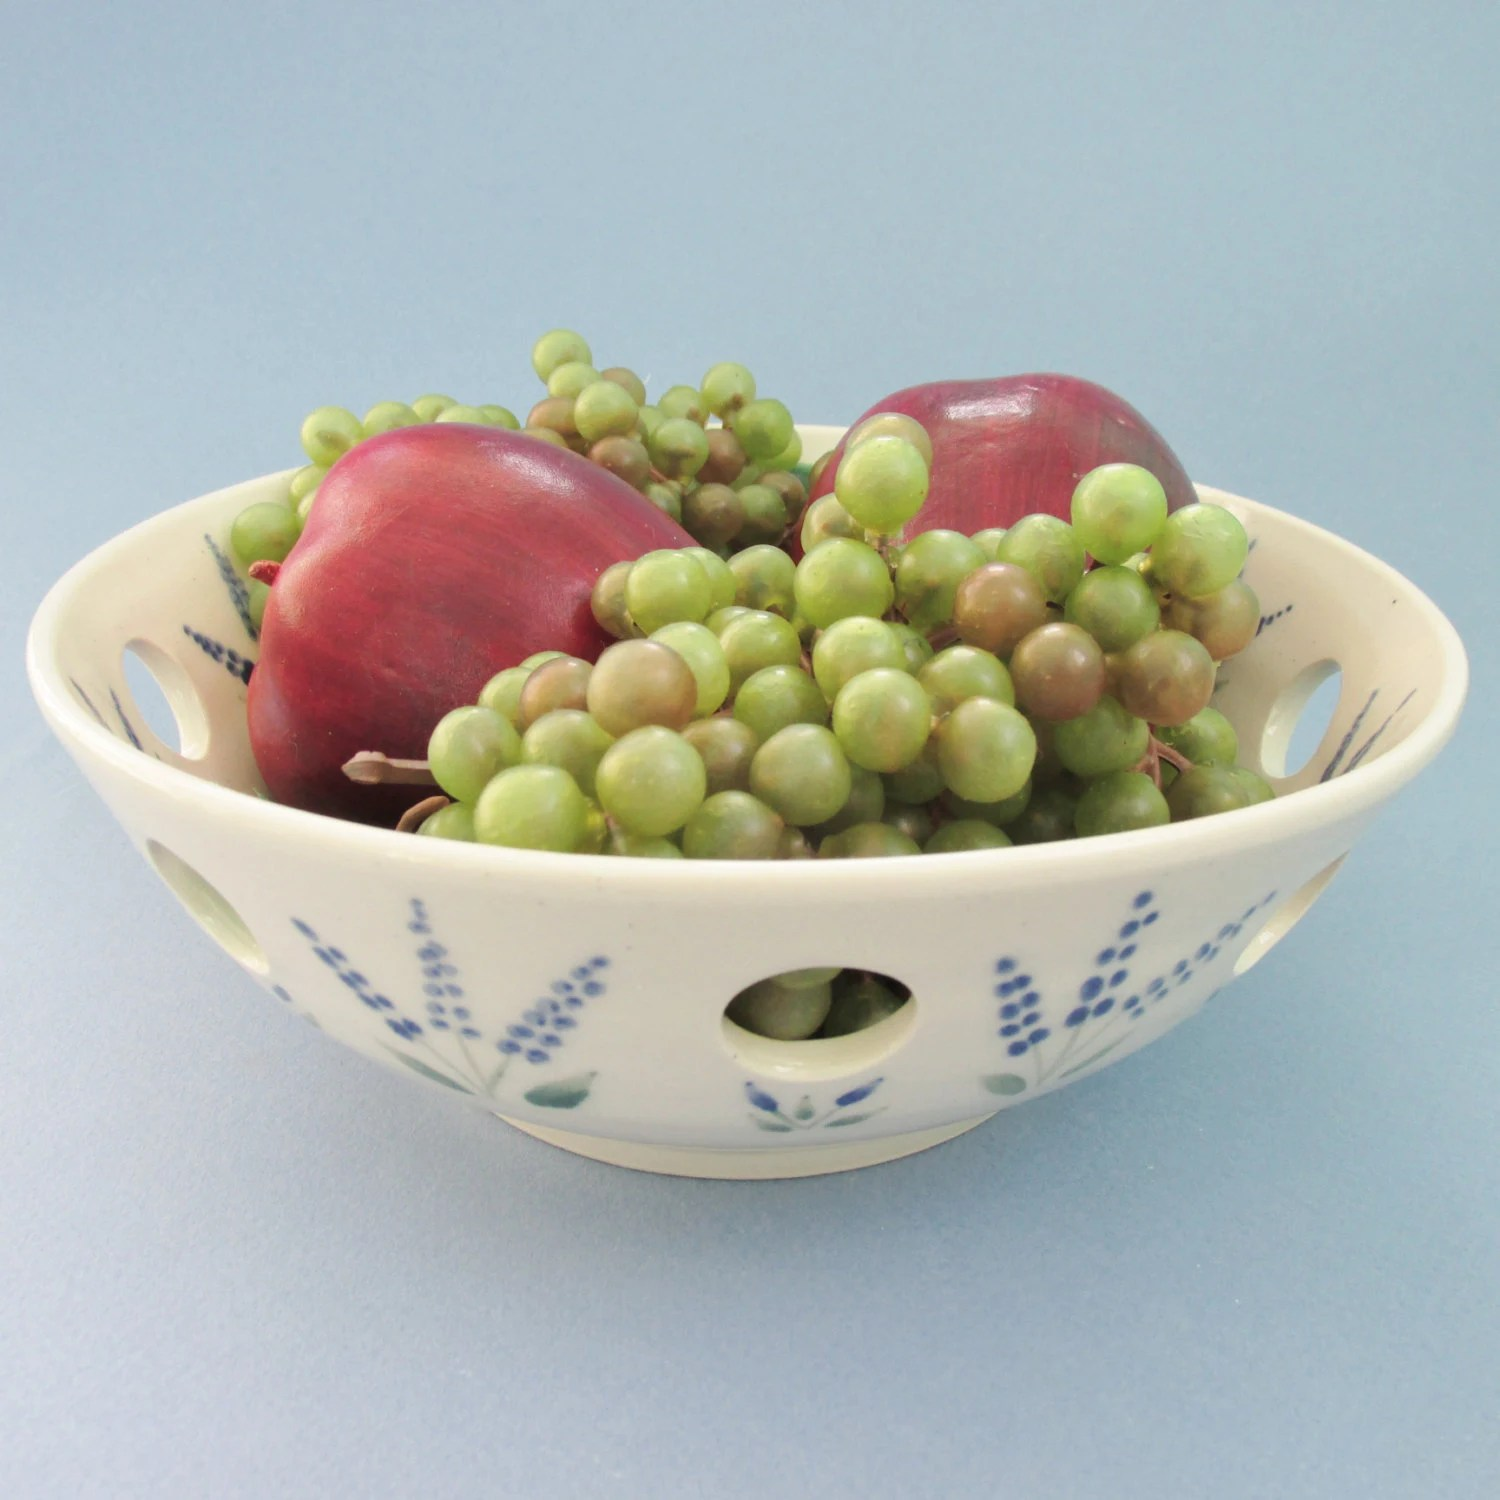 Fruit Bowl For Counter Pottery Fruit Bowl Ceramic Decorative Bowl By Carterspottery